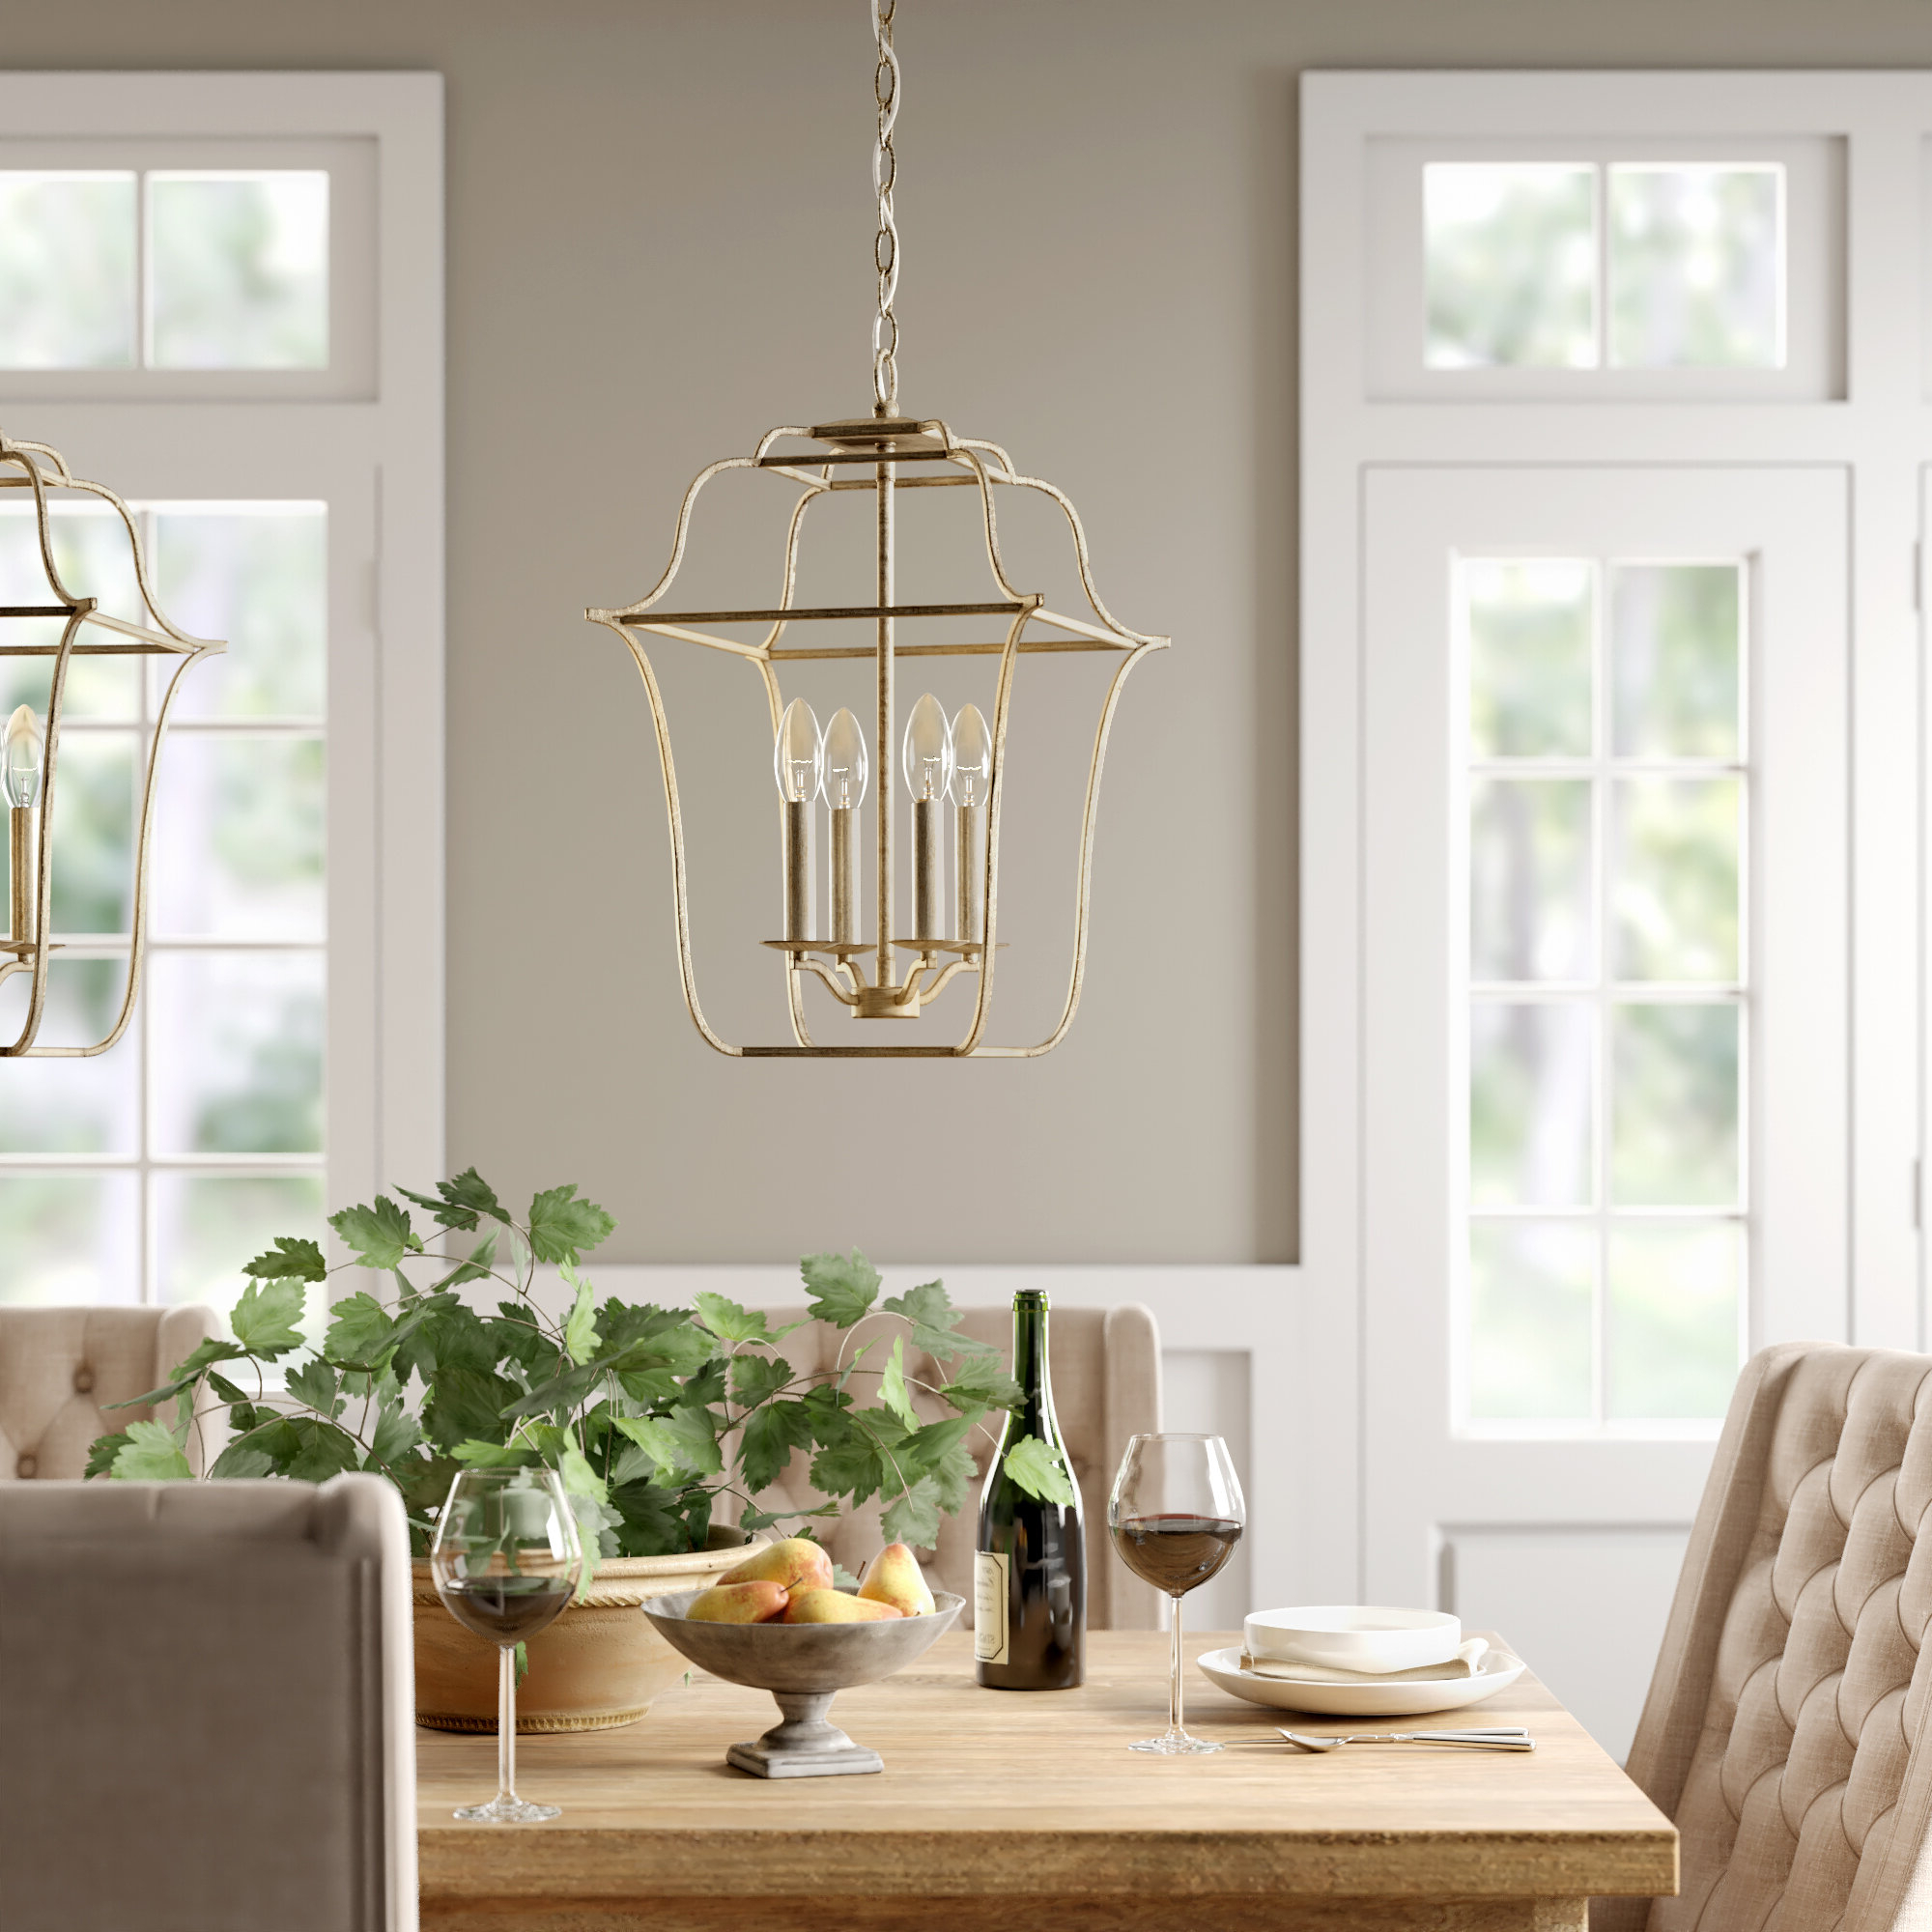 Chloe 4 Light Lantern Geometric Pendant With Most Current Kierra 4 Light Unique / Statement Chandeliers (View 7 of 25)